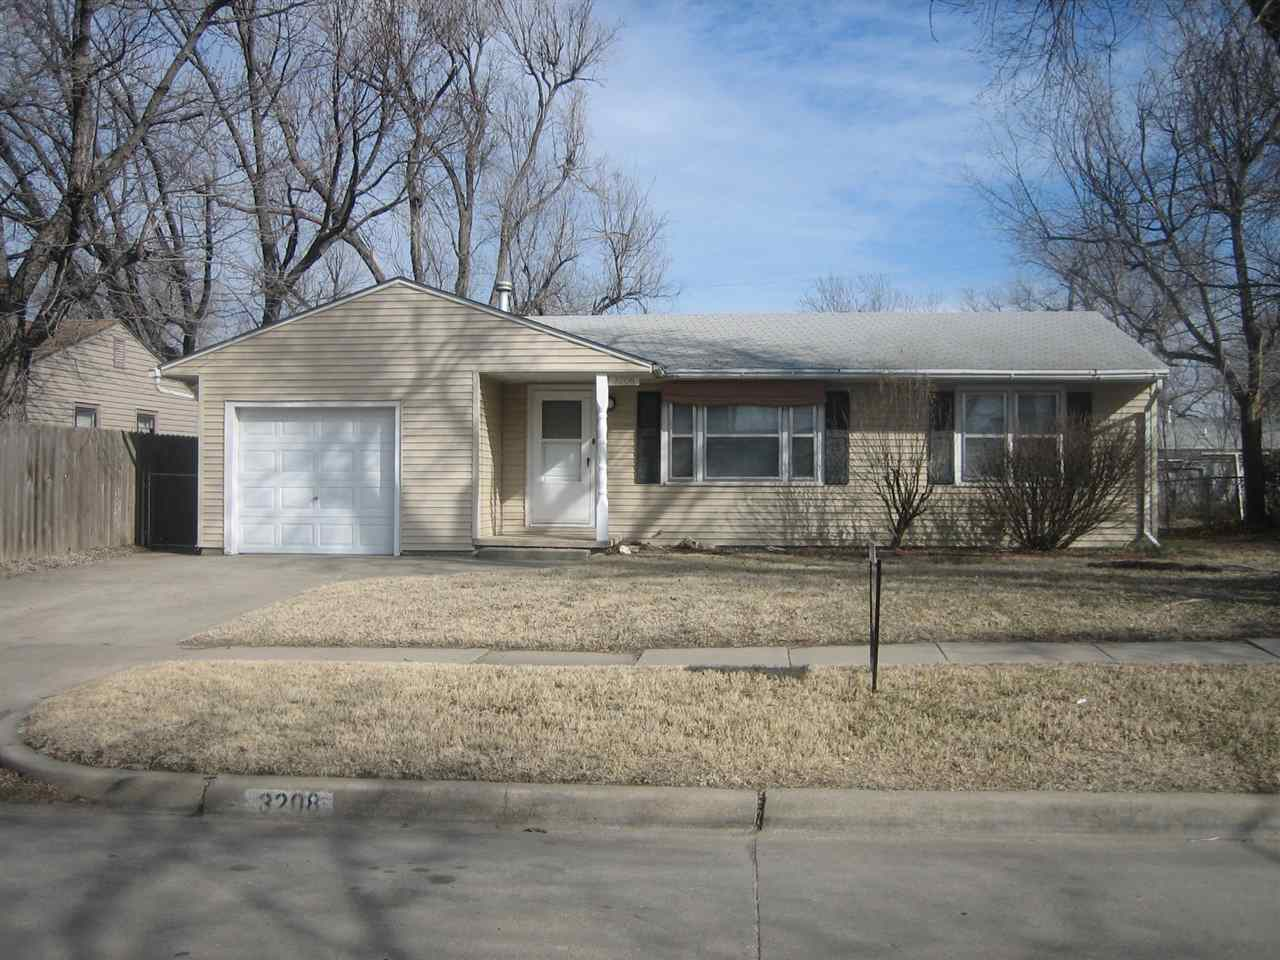 3208 S Vine St, Wichita, KS 67217